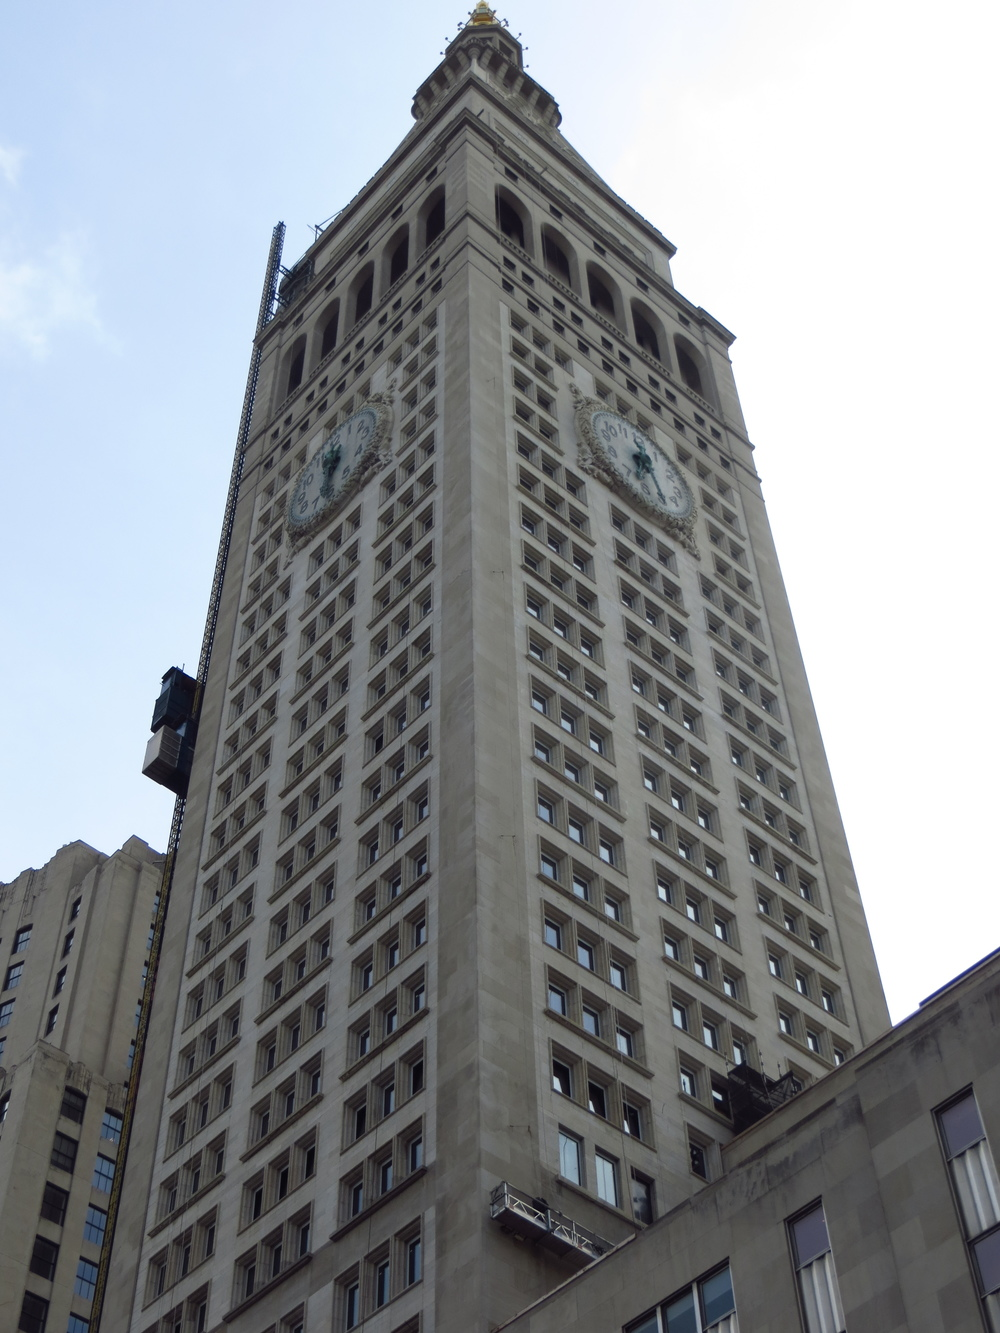 Met Life Tower (built 1909, tallest building in the world for 4 years)